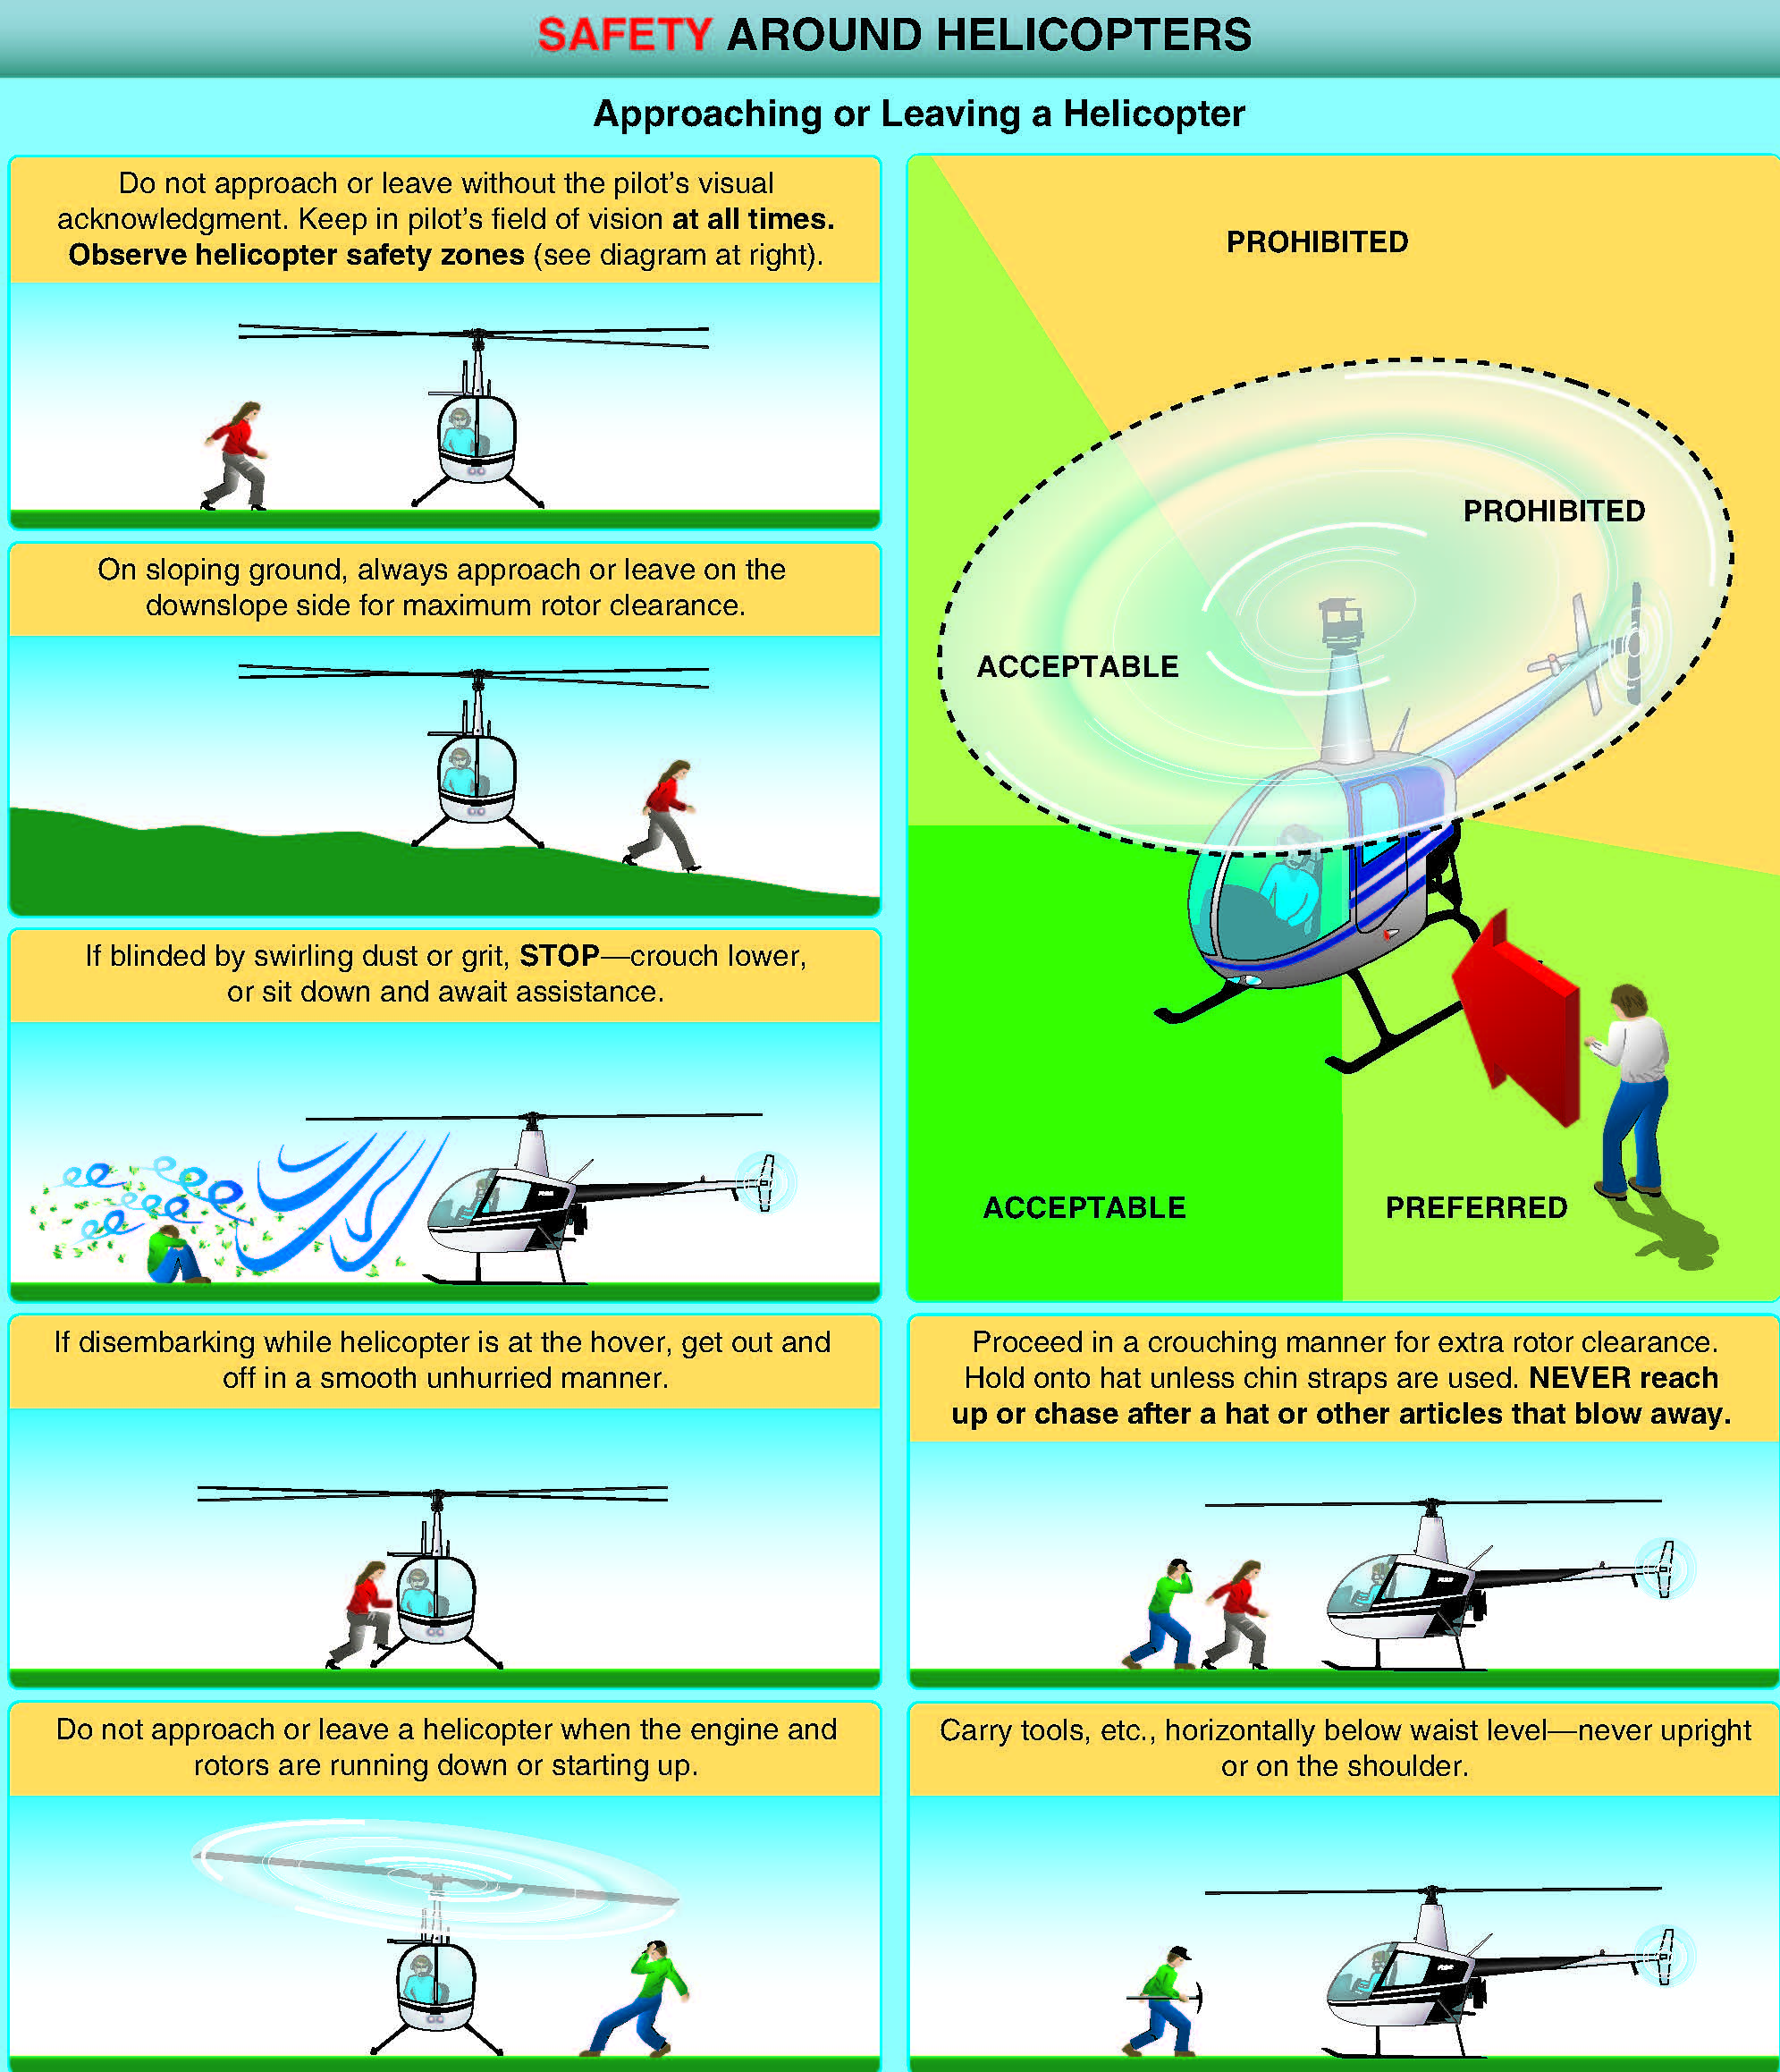 SAFETY AROUND A HELICOPTER